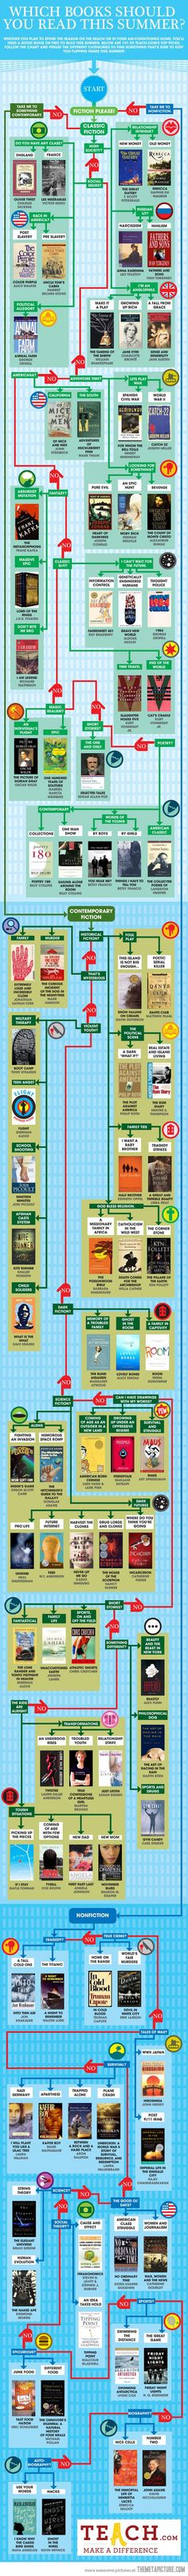 Which book should you read? (useful guide!)